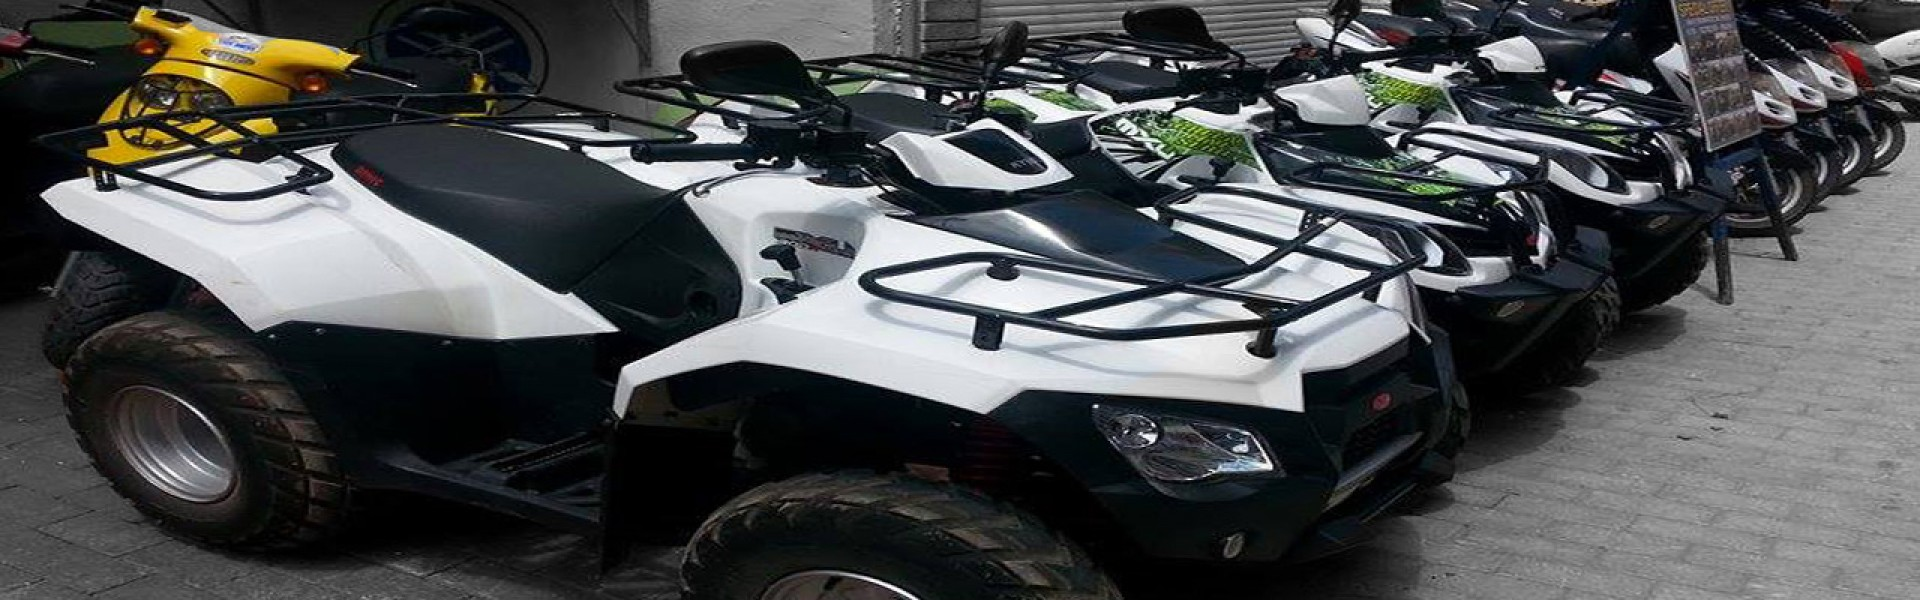 RENT A MOTO ATV QUAD THASSOS POTOS